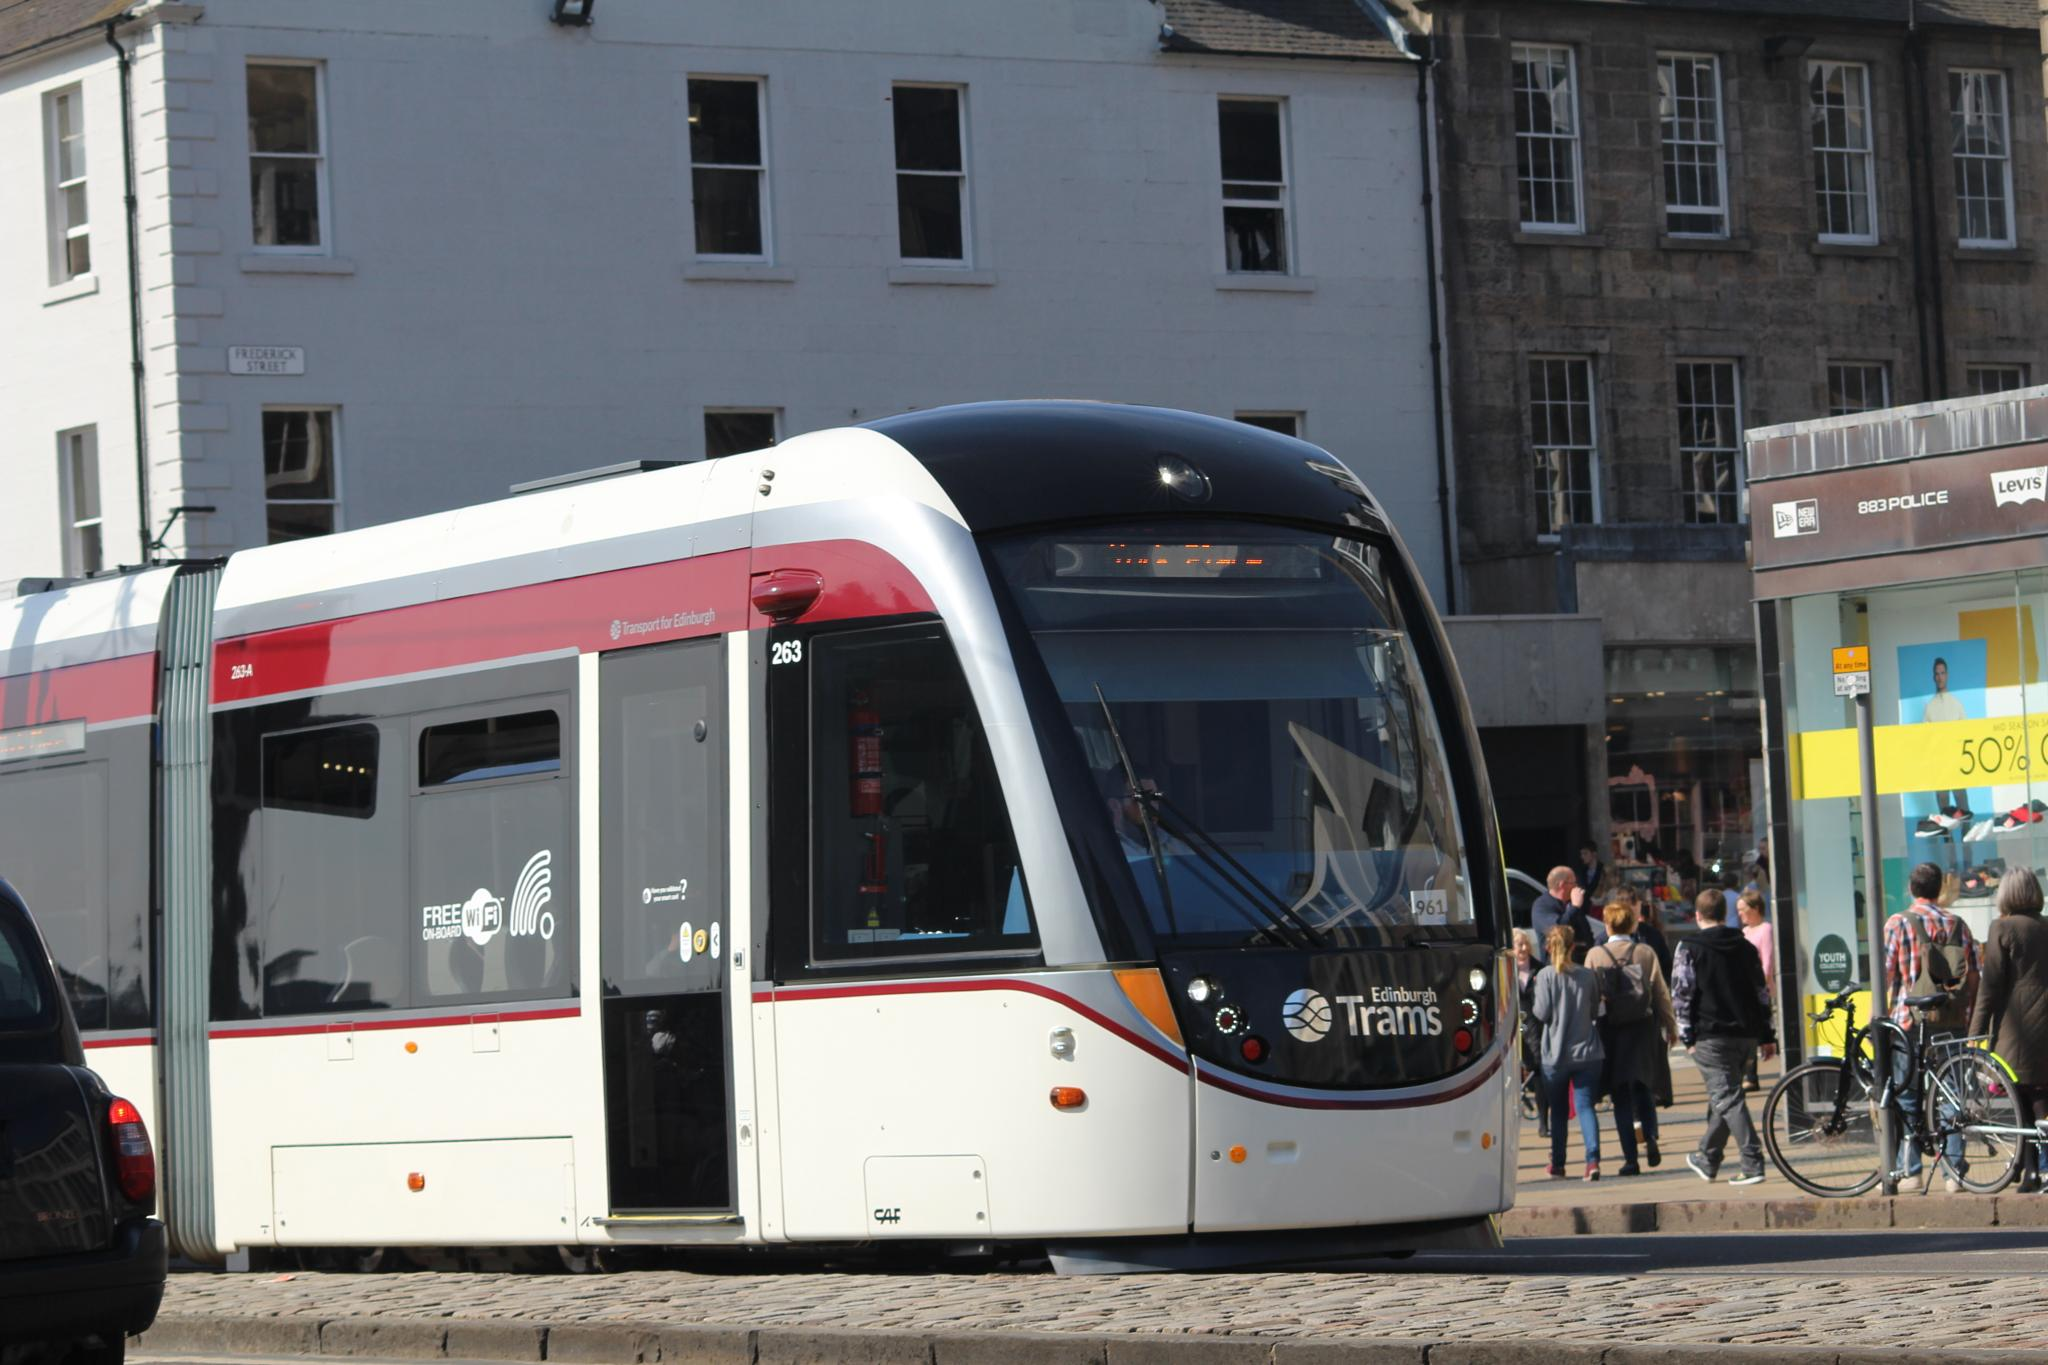 Edinburgh Tram by karl.green1